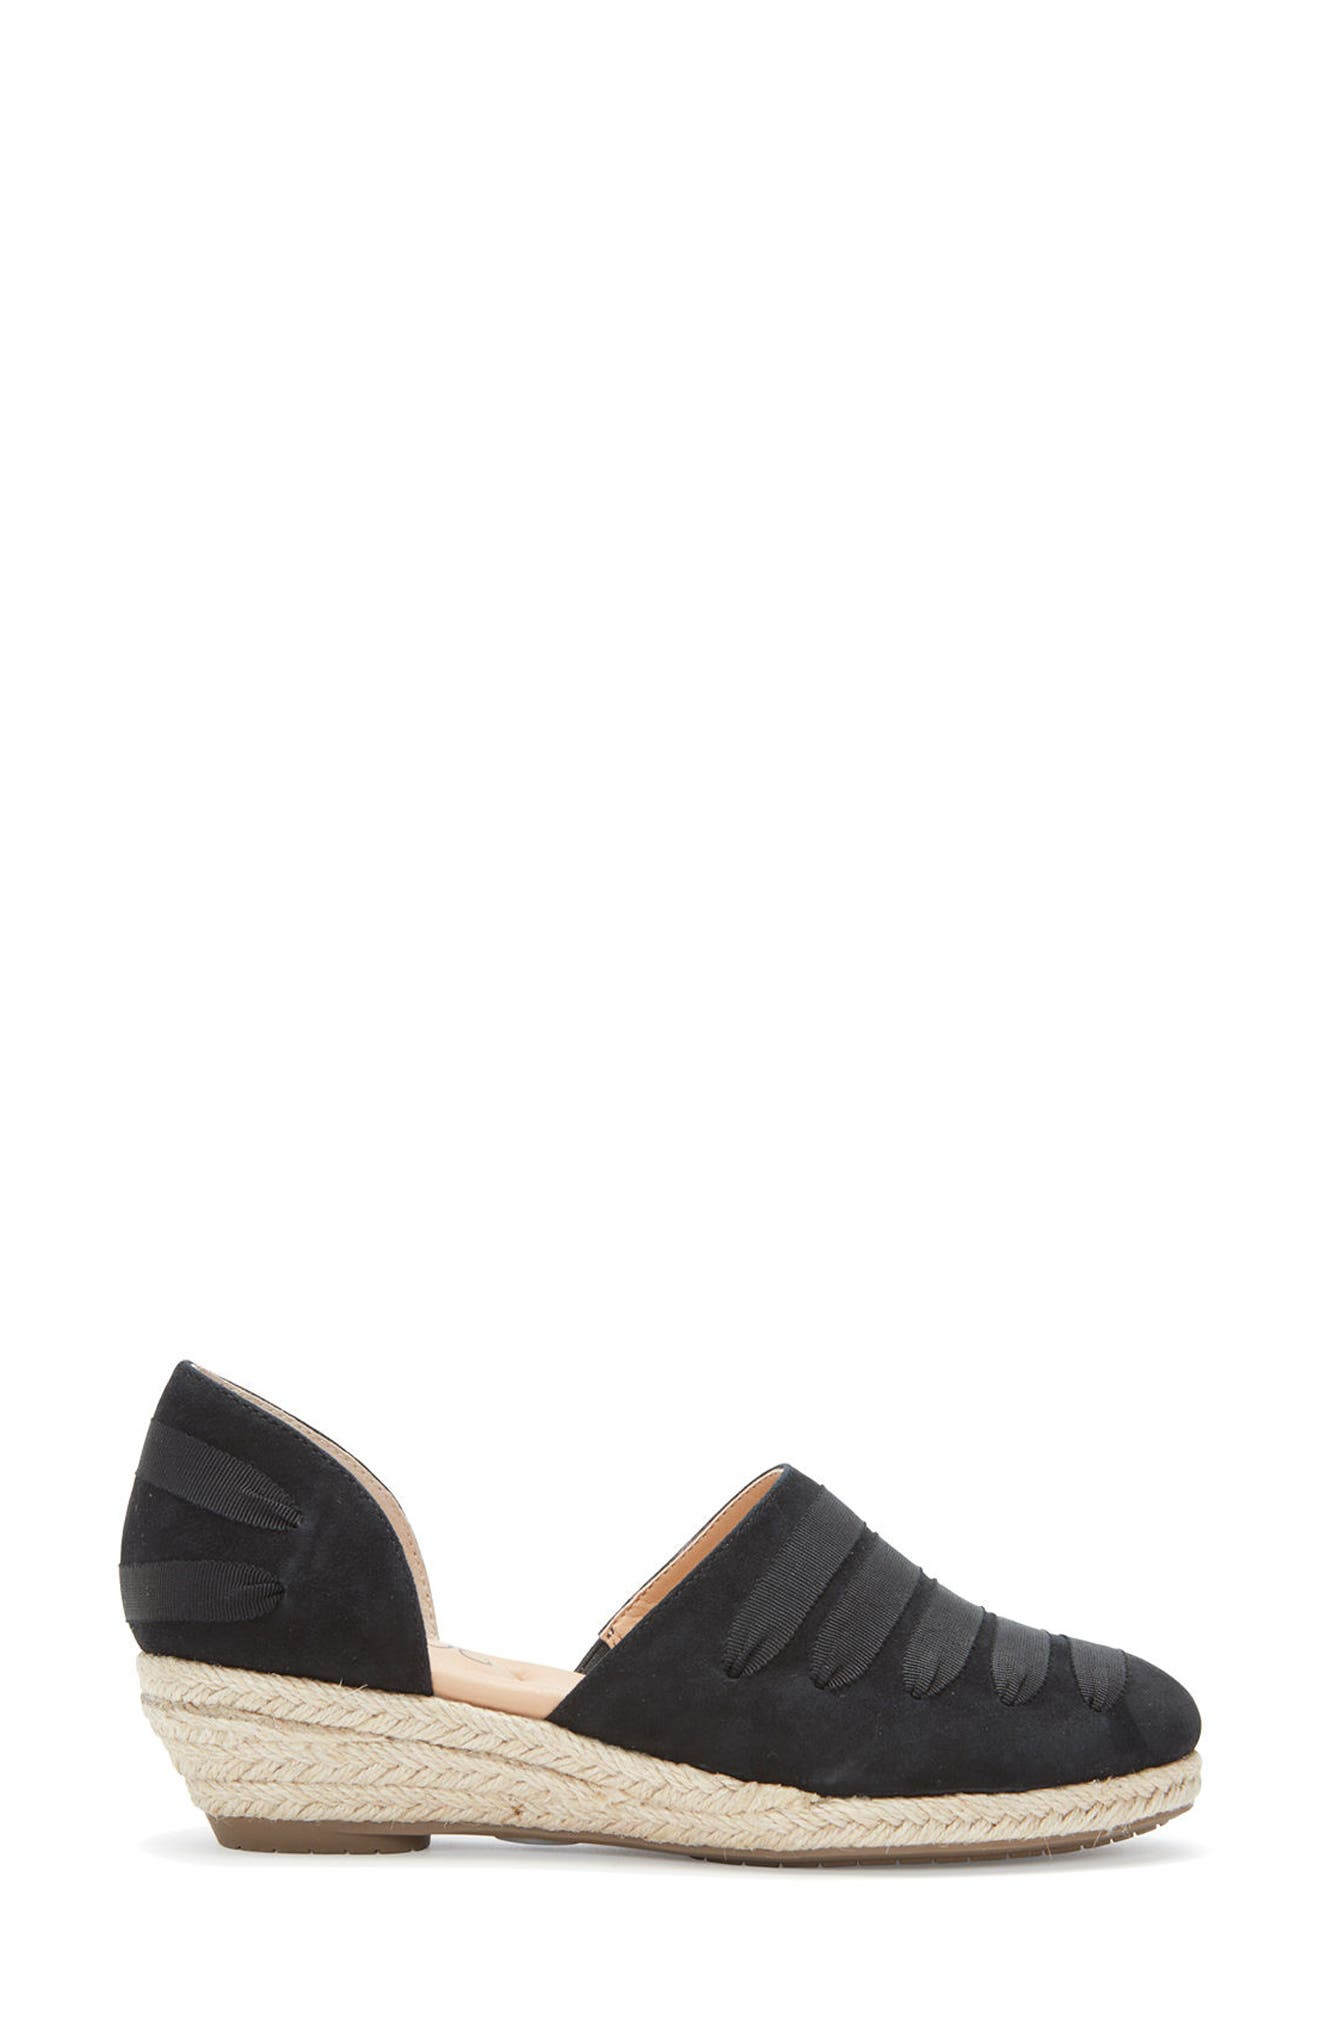 Netta Espadrille Wedge,                             Alternate thumbnail 3, color,                             014